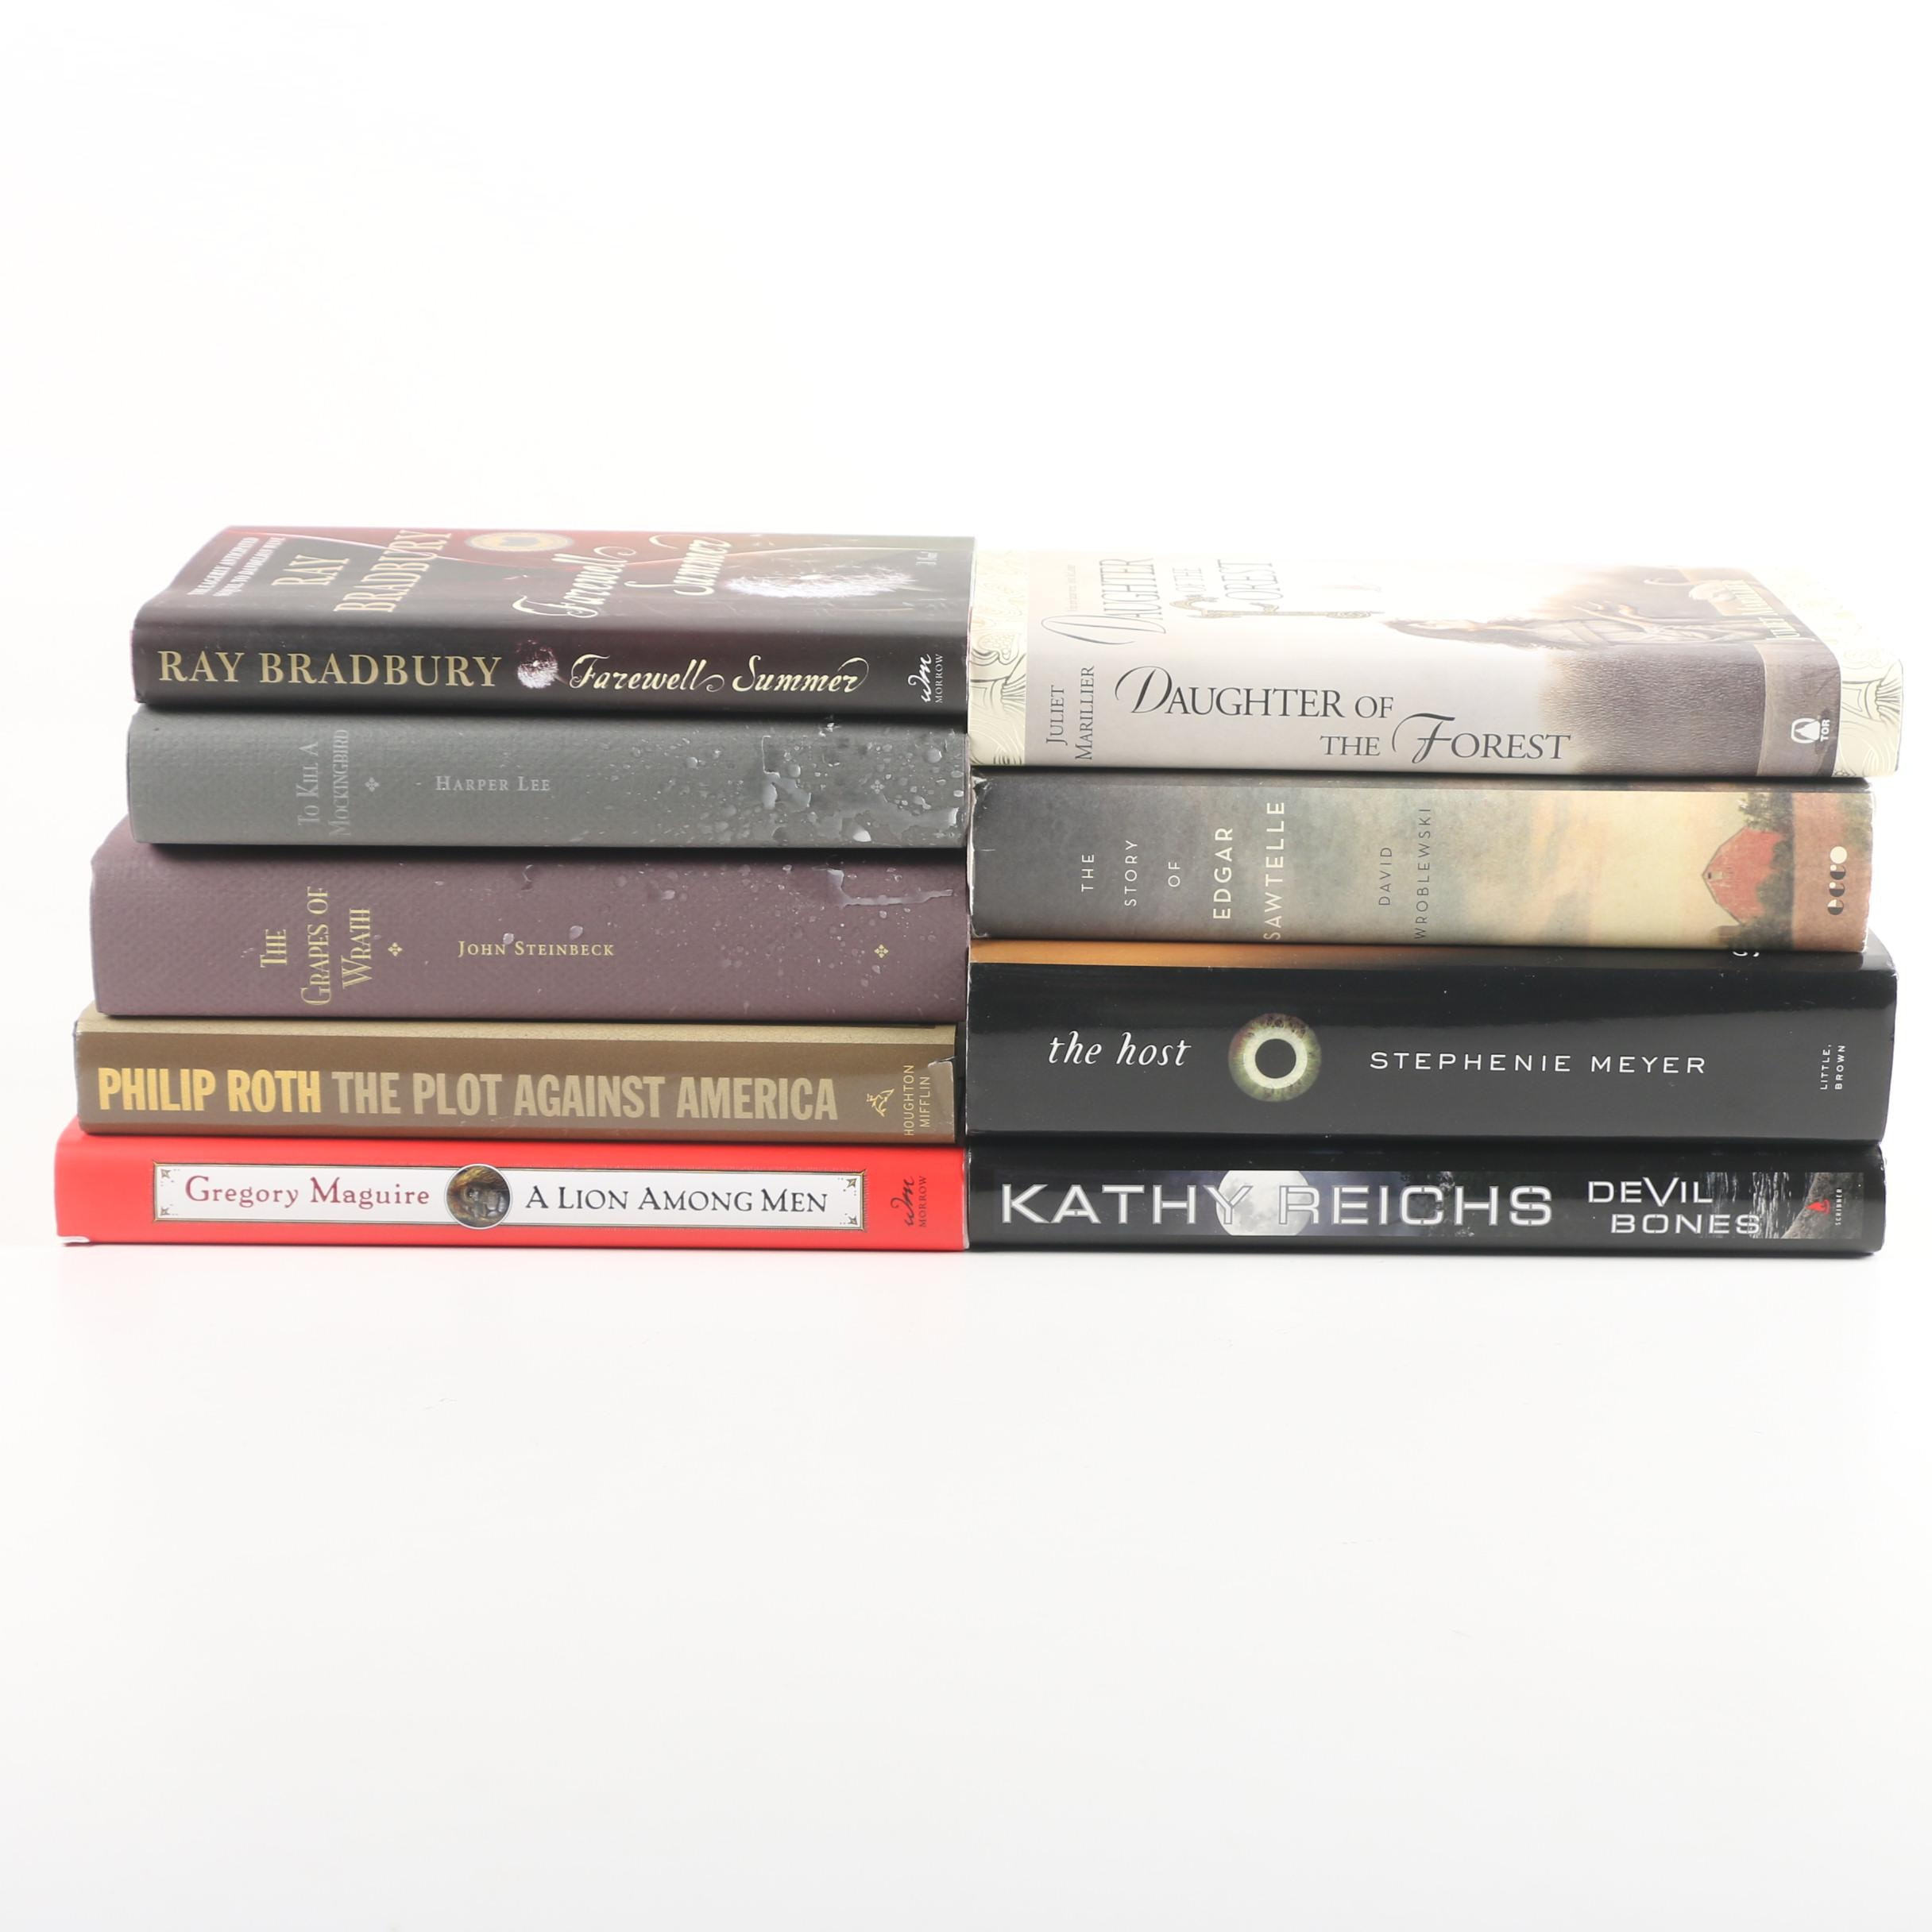 Fiction Books including Harper Lee, John Steinbeck, Philip Roth and Ray Bradbury